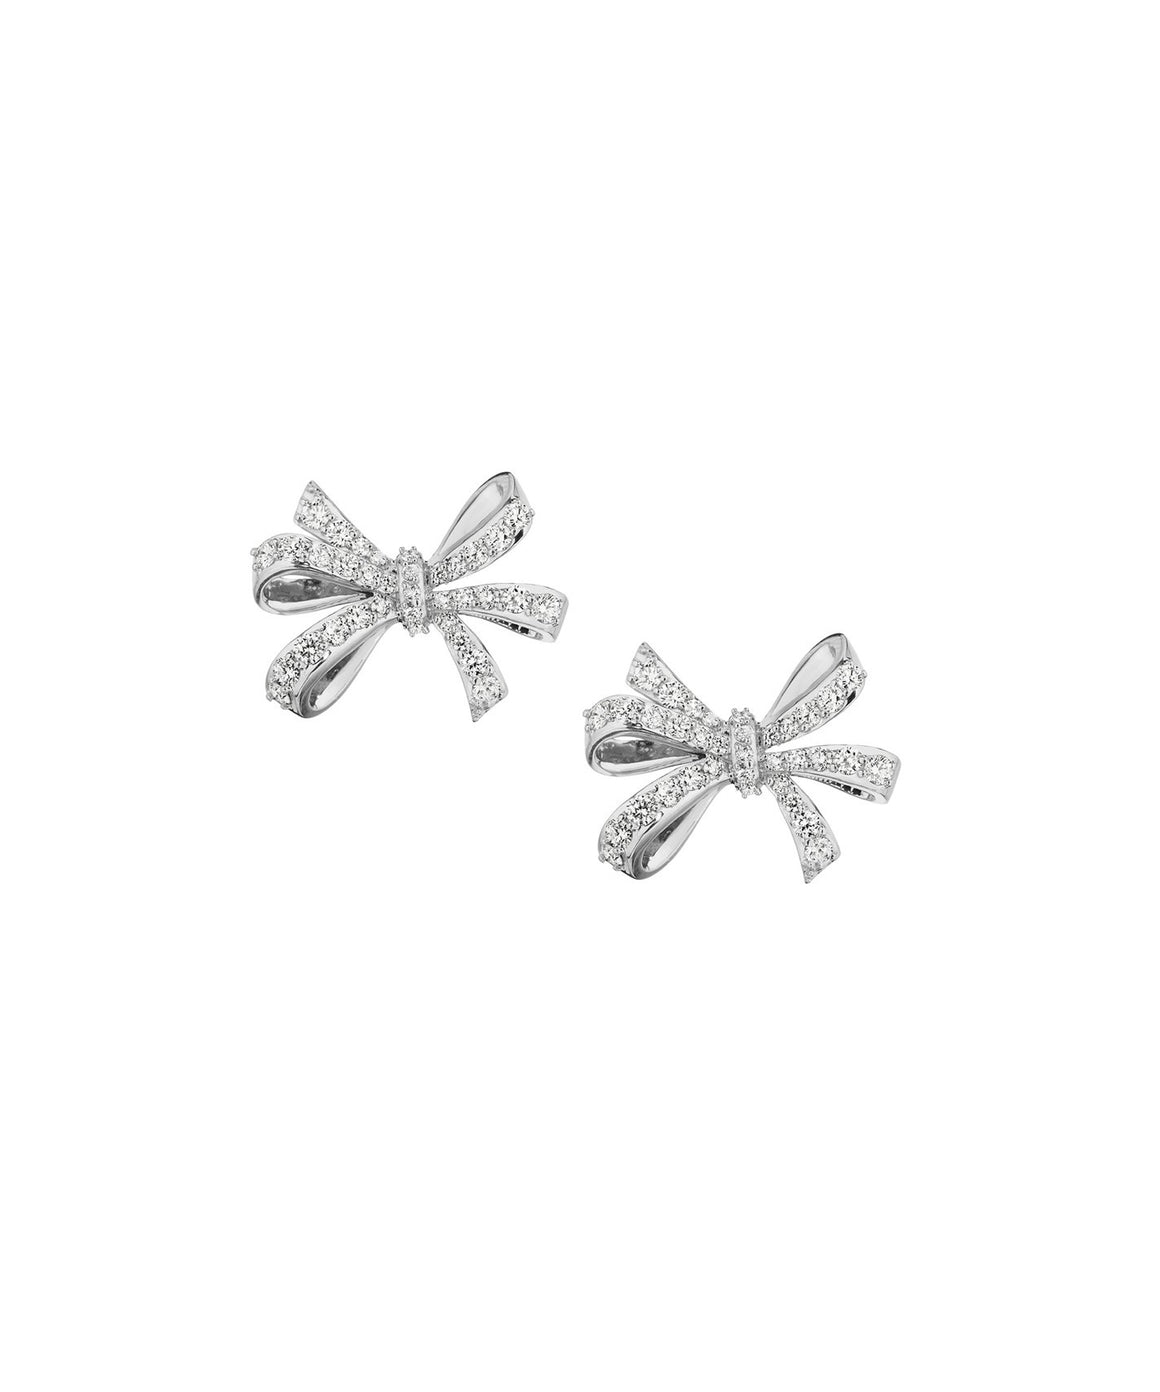 Double-loop bow stud earrings